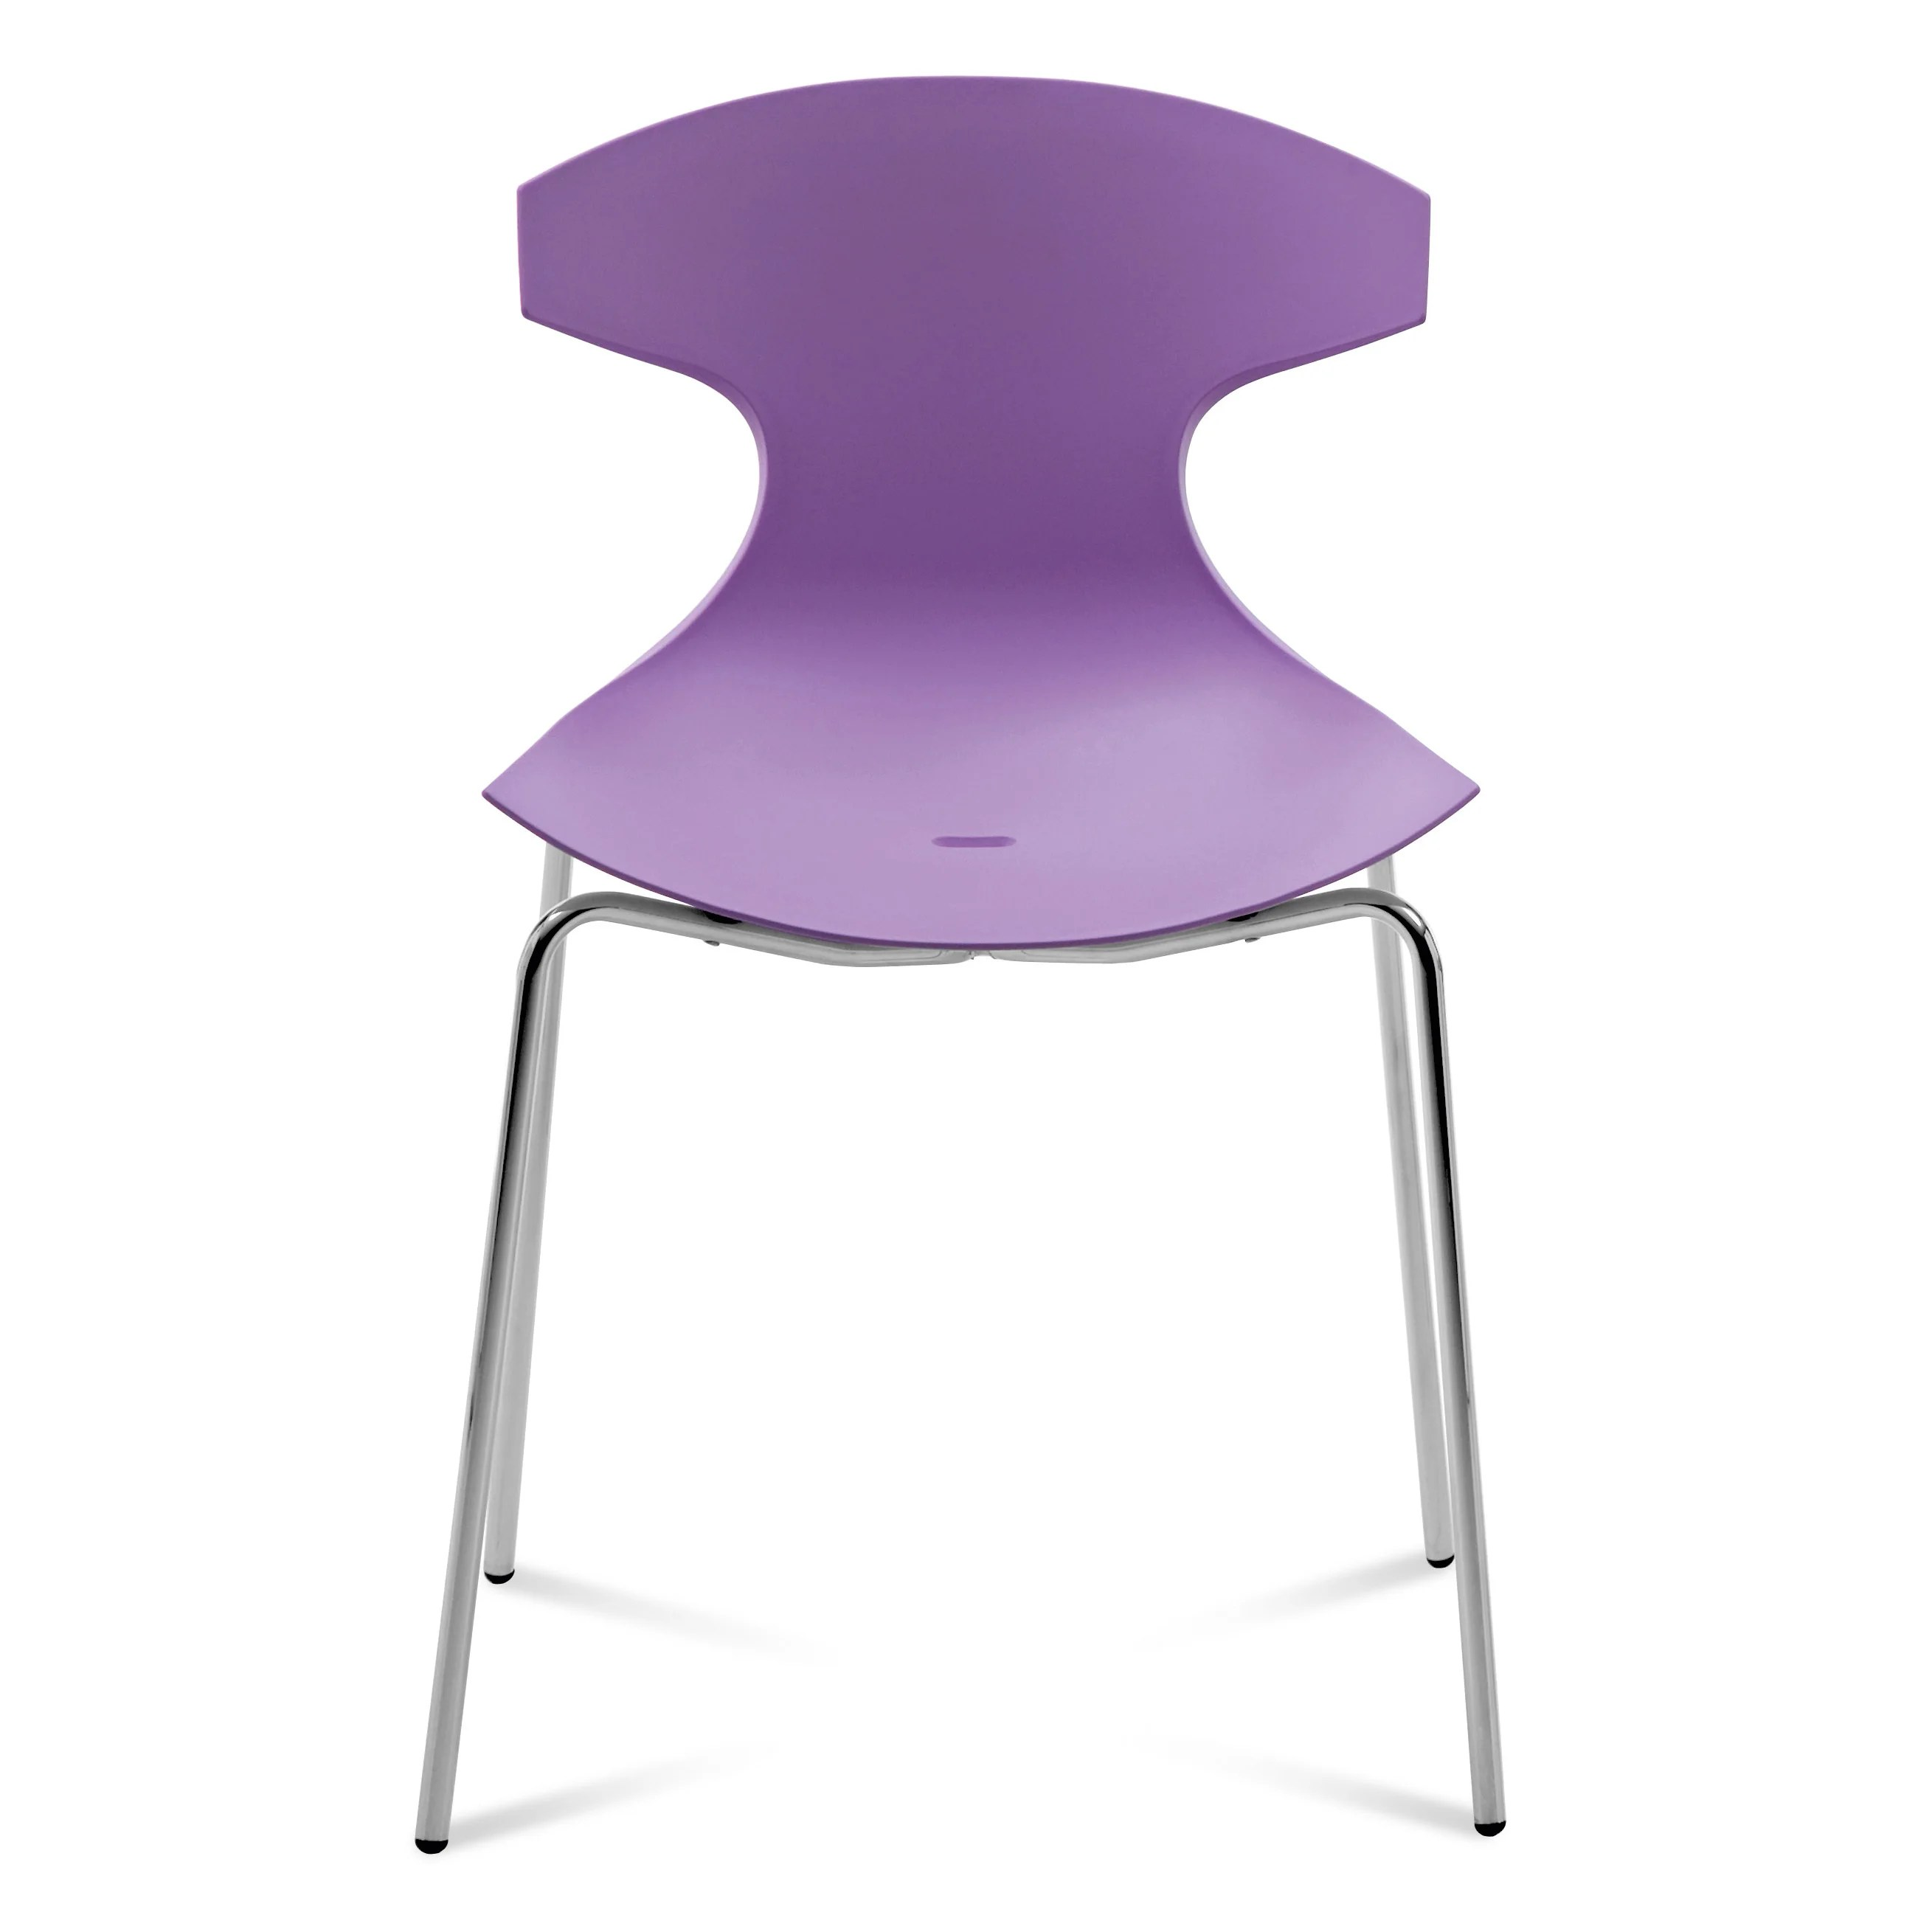 Stacking Dining Chairs Domitalia Echo Stacking Dining Chair Wayfair Uk